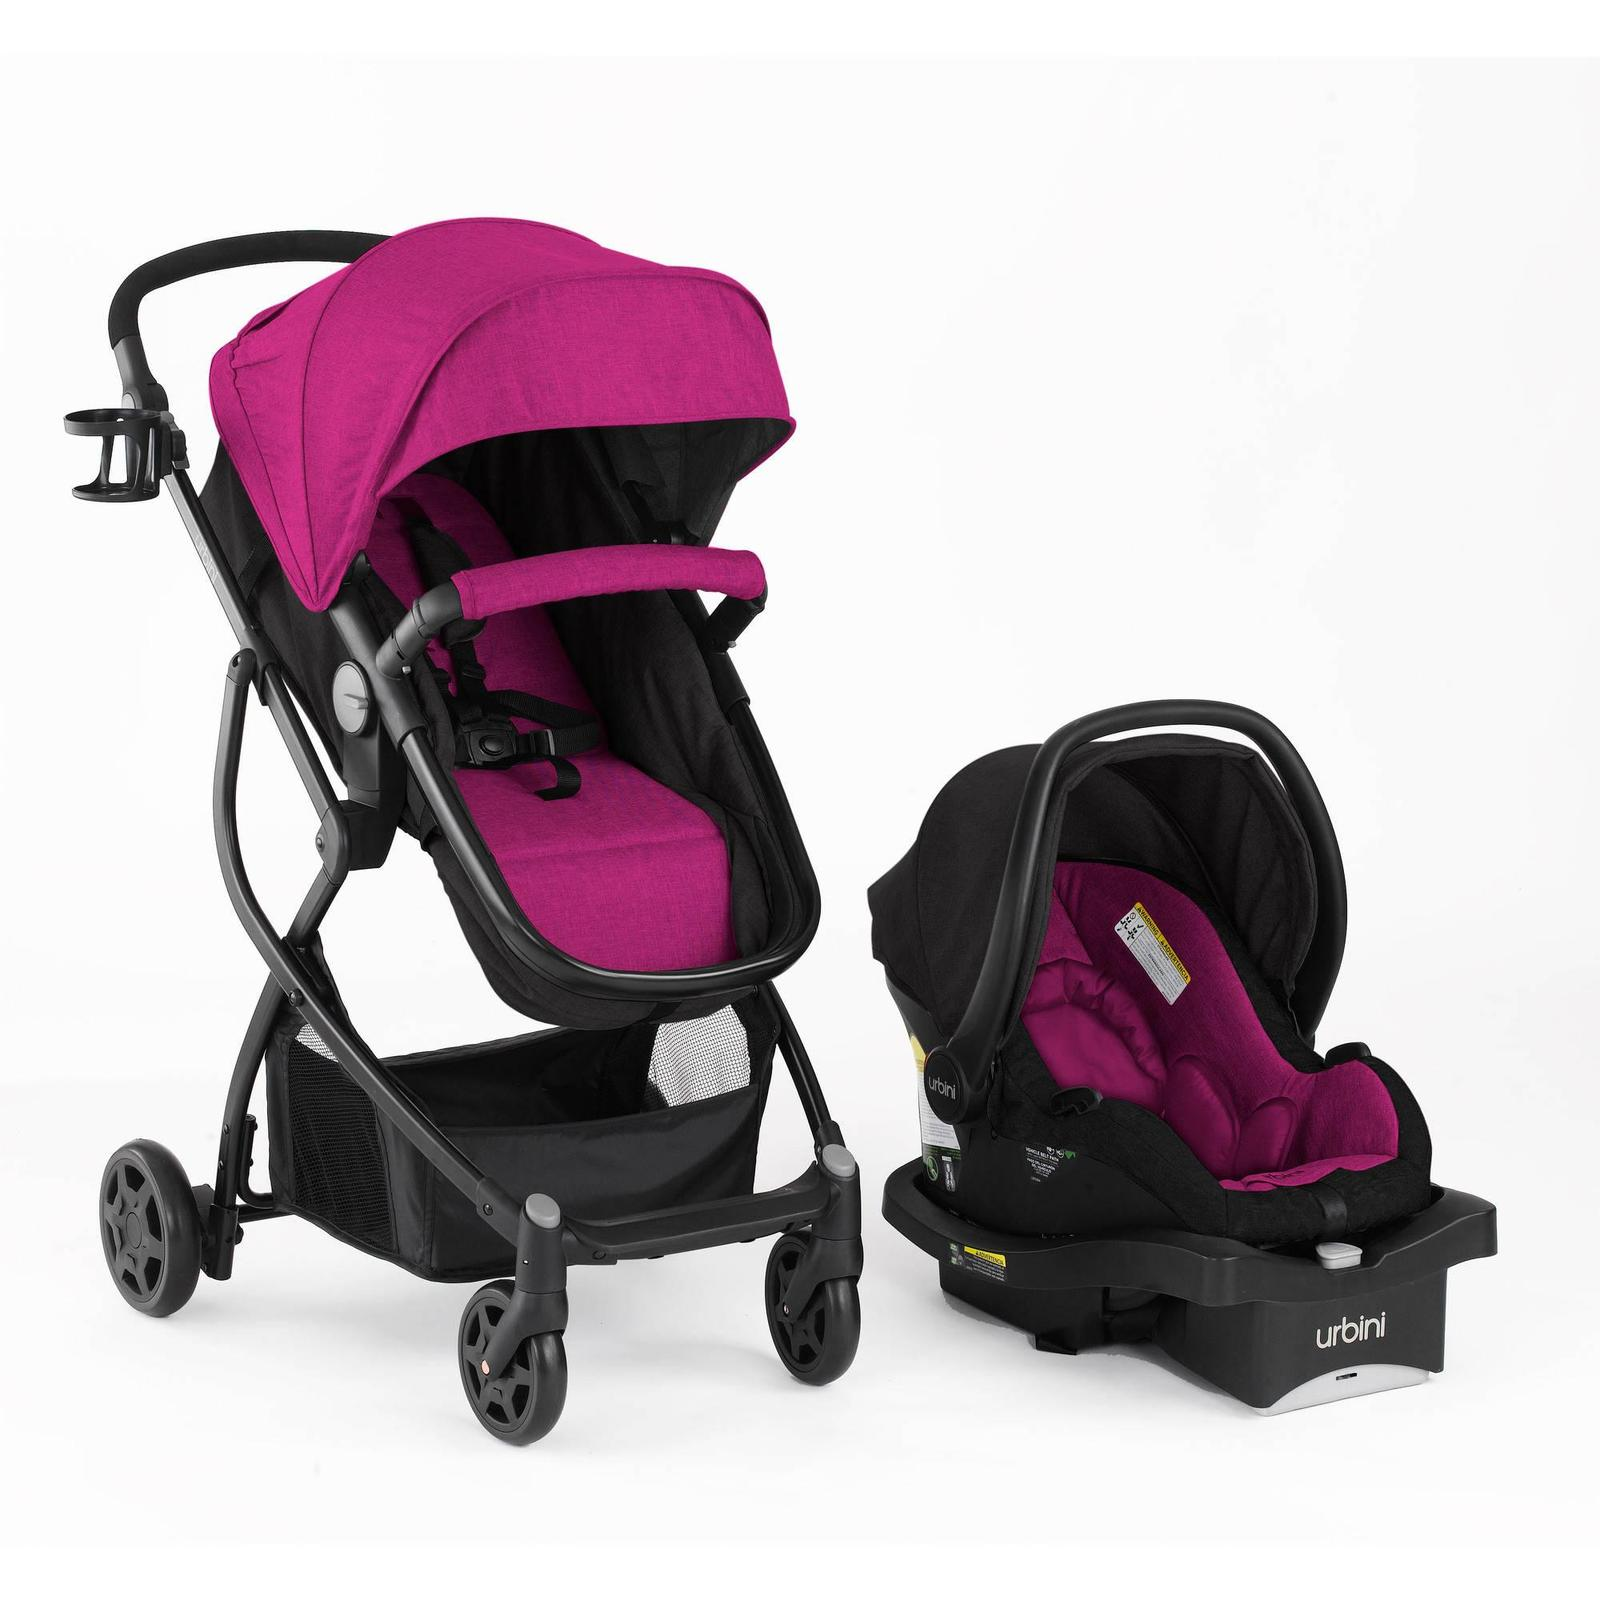 Stroller Urbini Travel System 3 In 1 Convertible Car Seat